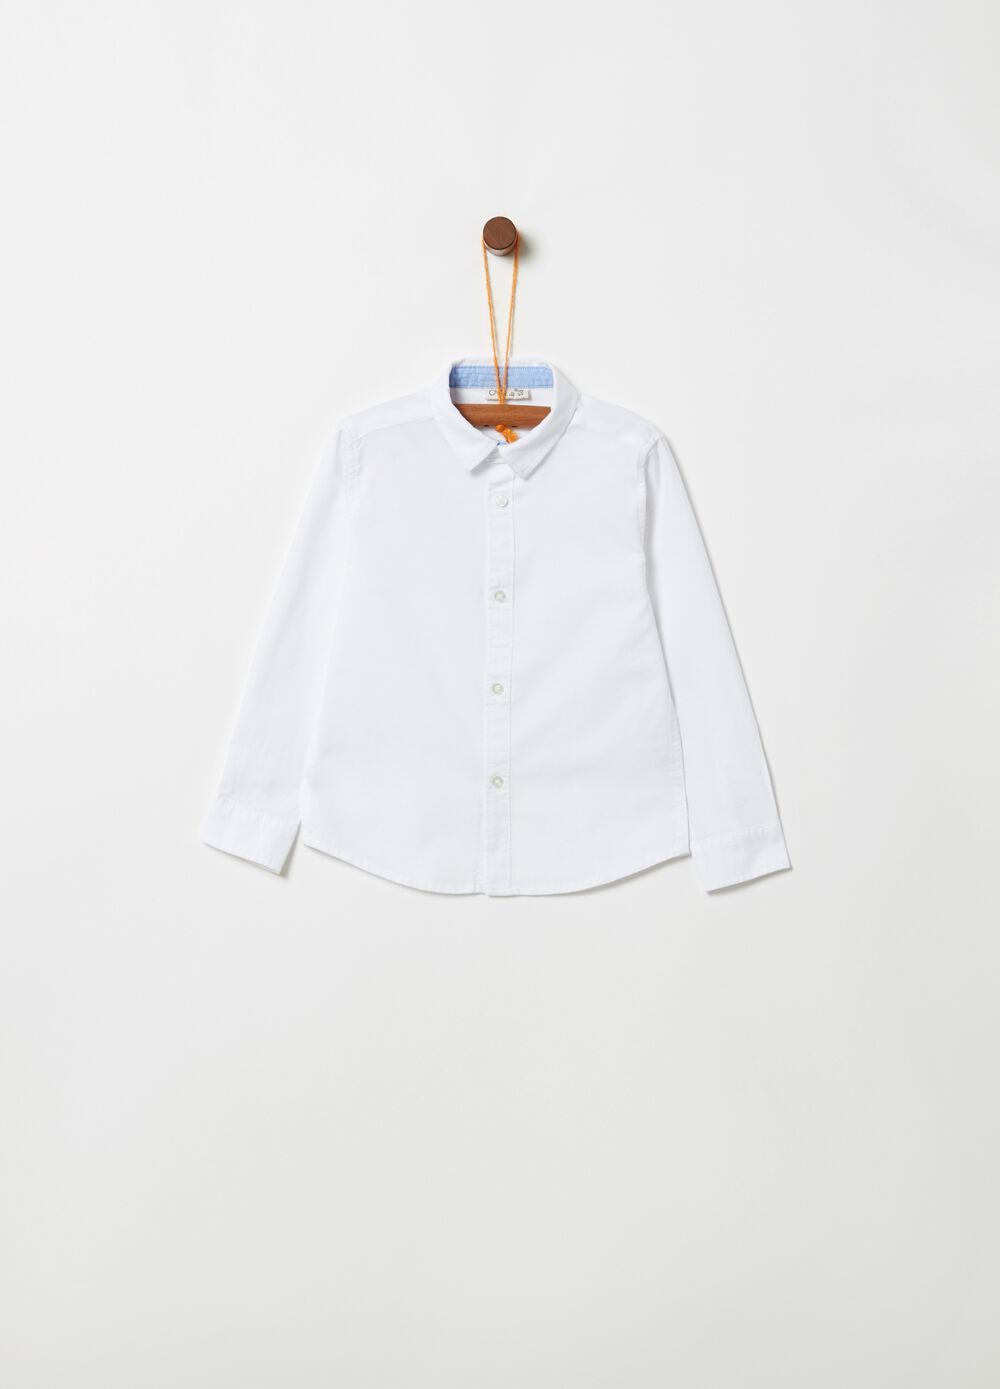 Shirt with bluff collar and buttons